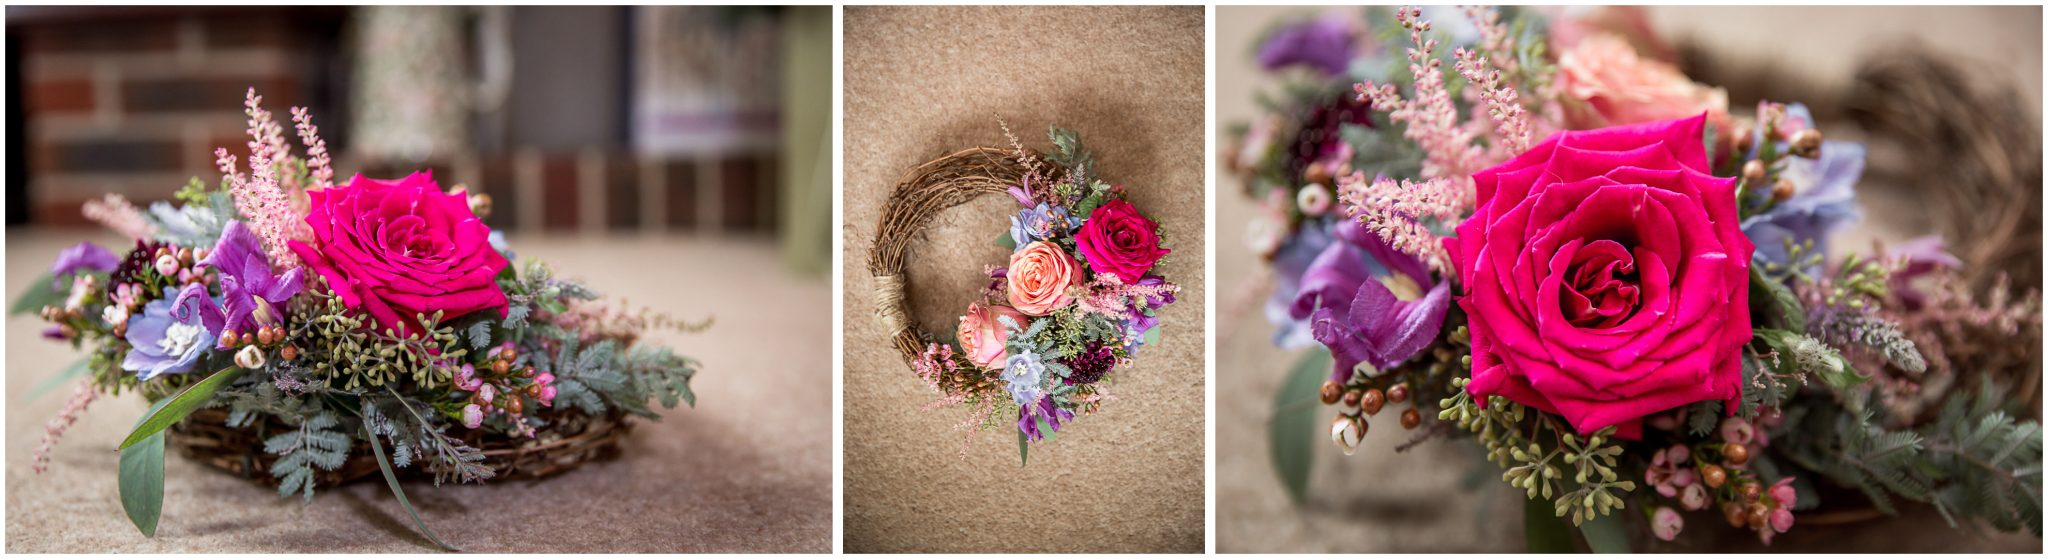 Timsbury Manor Festival Wedding colourful floral details